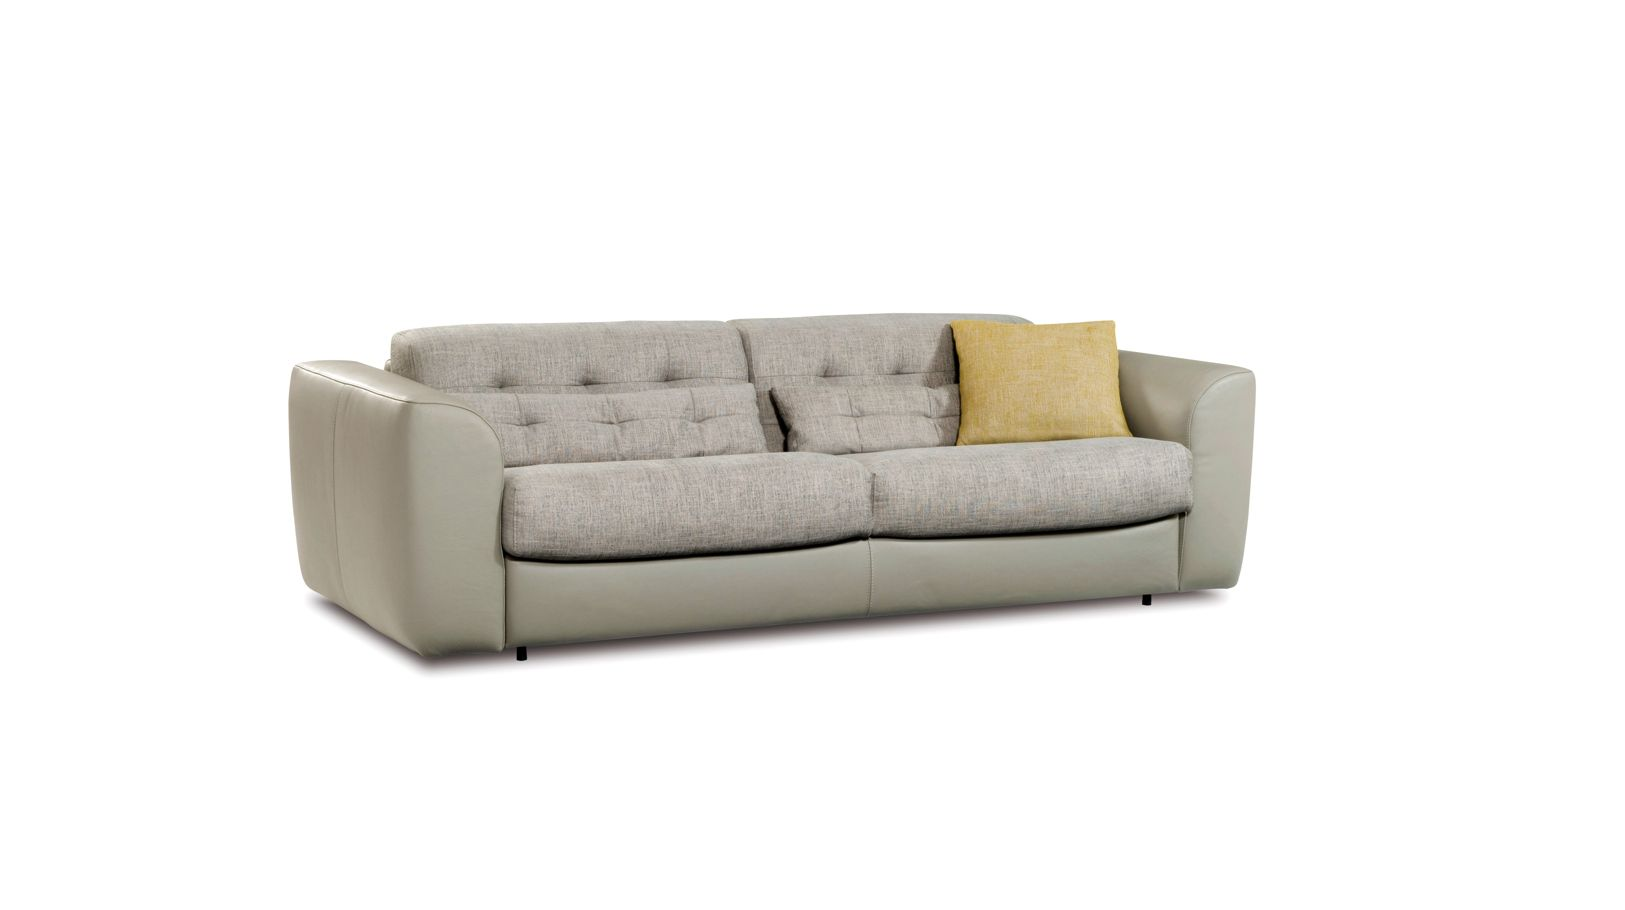 Grand canape convertible 3 places nocturnes roche bobois for Canape 5 place convertible